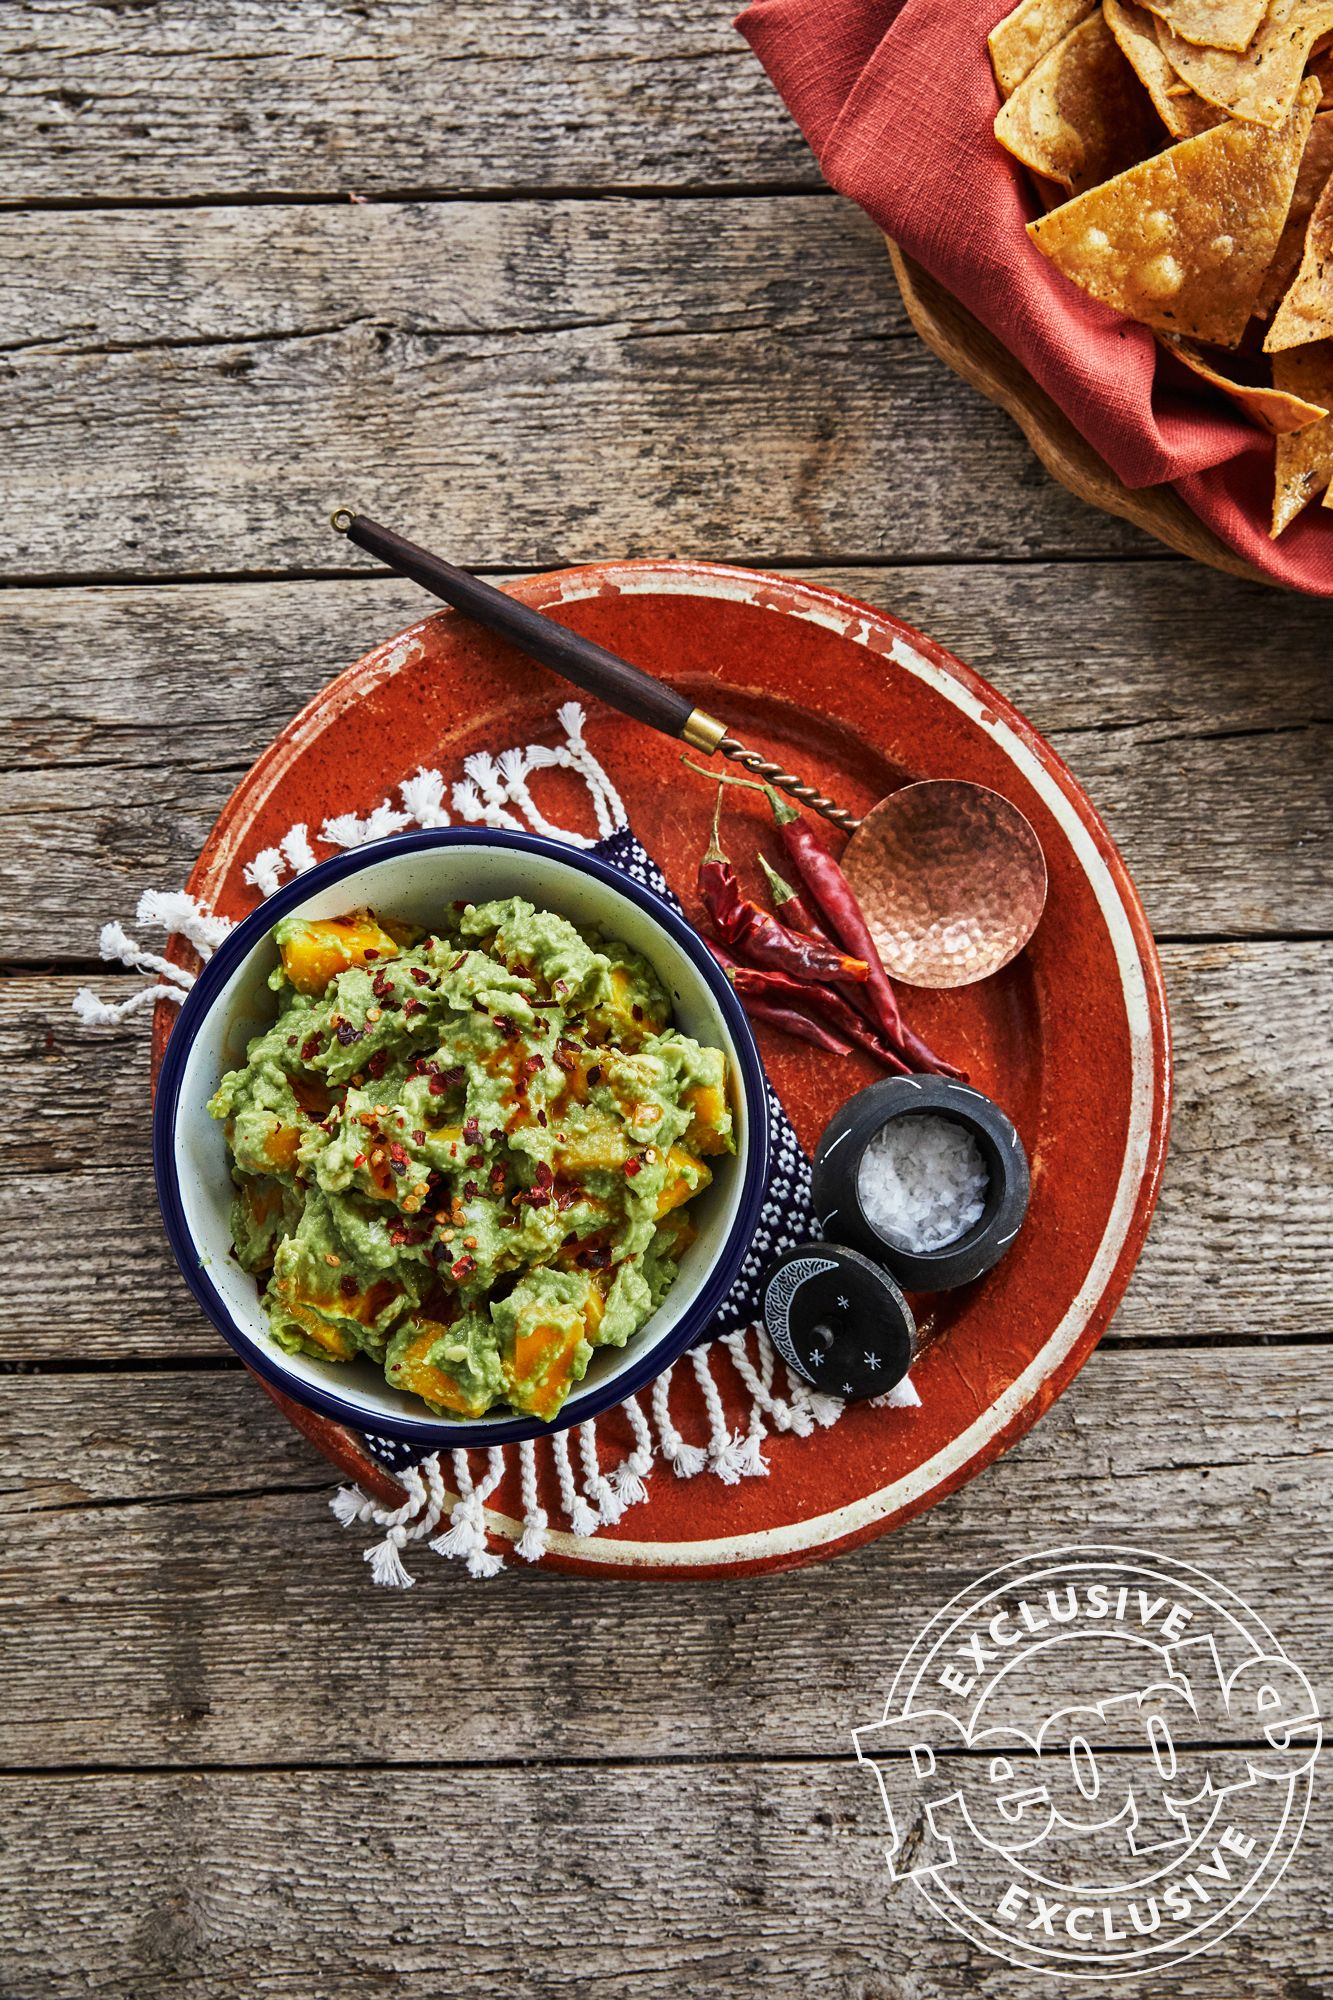 Marcela valladolid shares her best guacamole recipes for an instant the food network host and mom of three shares her spin on an easy summer cocktail party starring chips and salsa guac and margaritas forumfinder Gallery